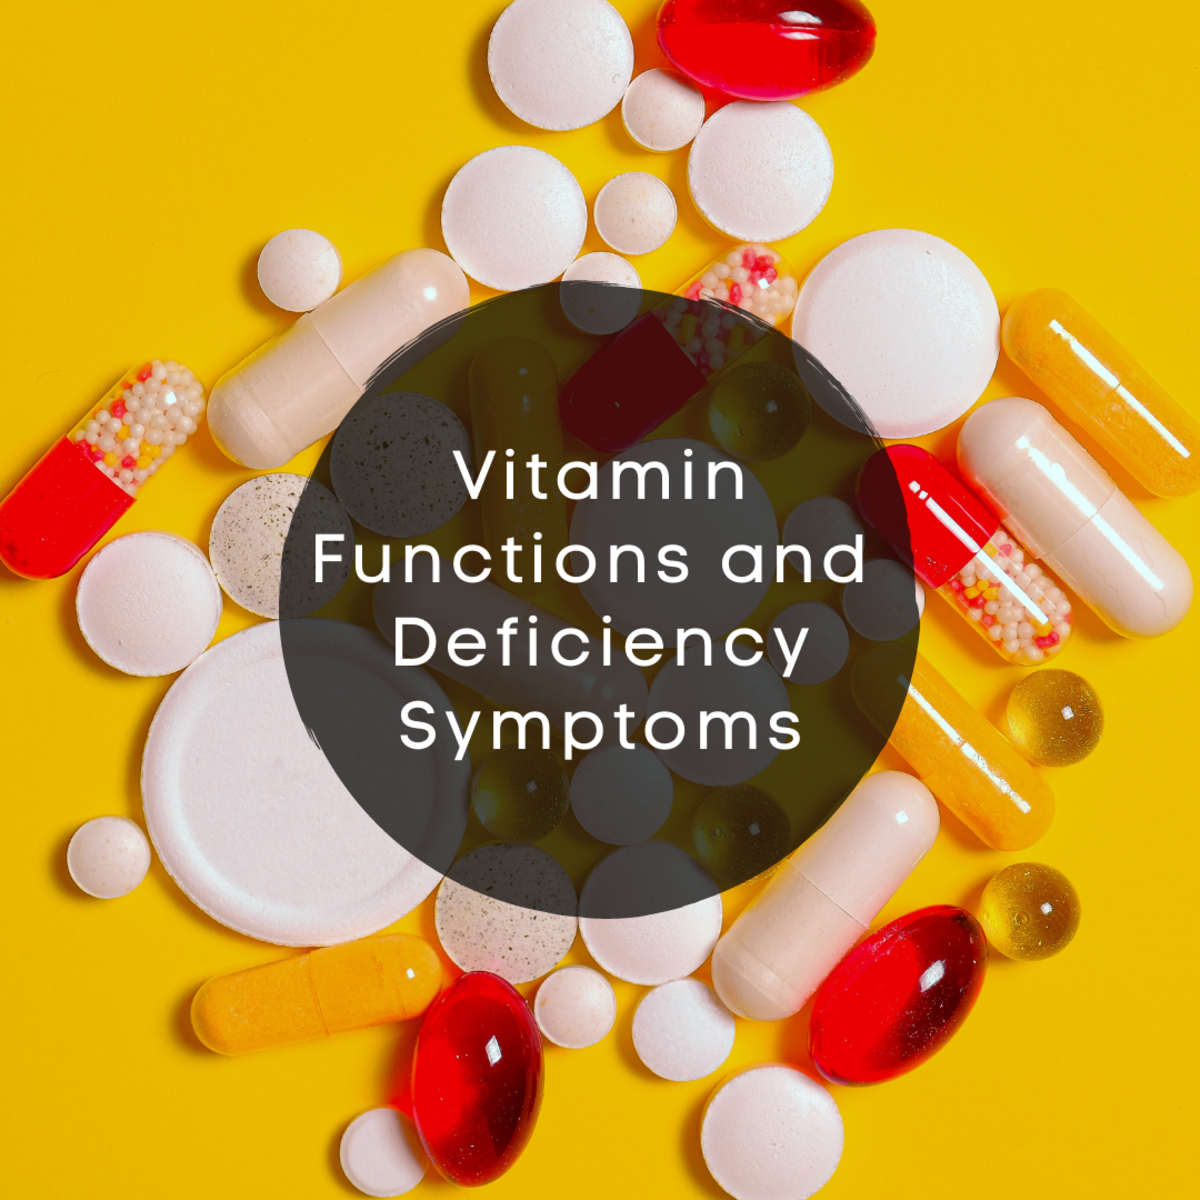 Here is an overview of the functions of vitamins, symptoms of vitamin deficiency, and natural sources.